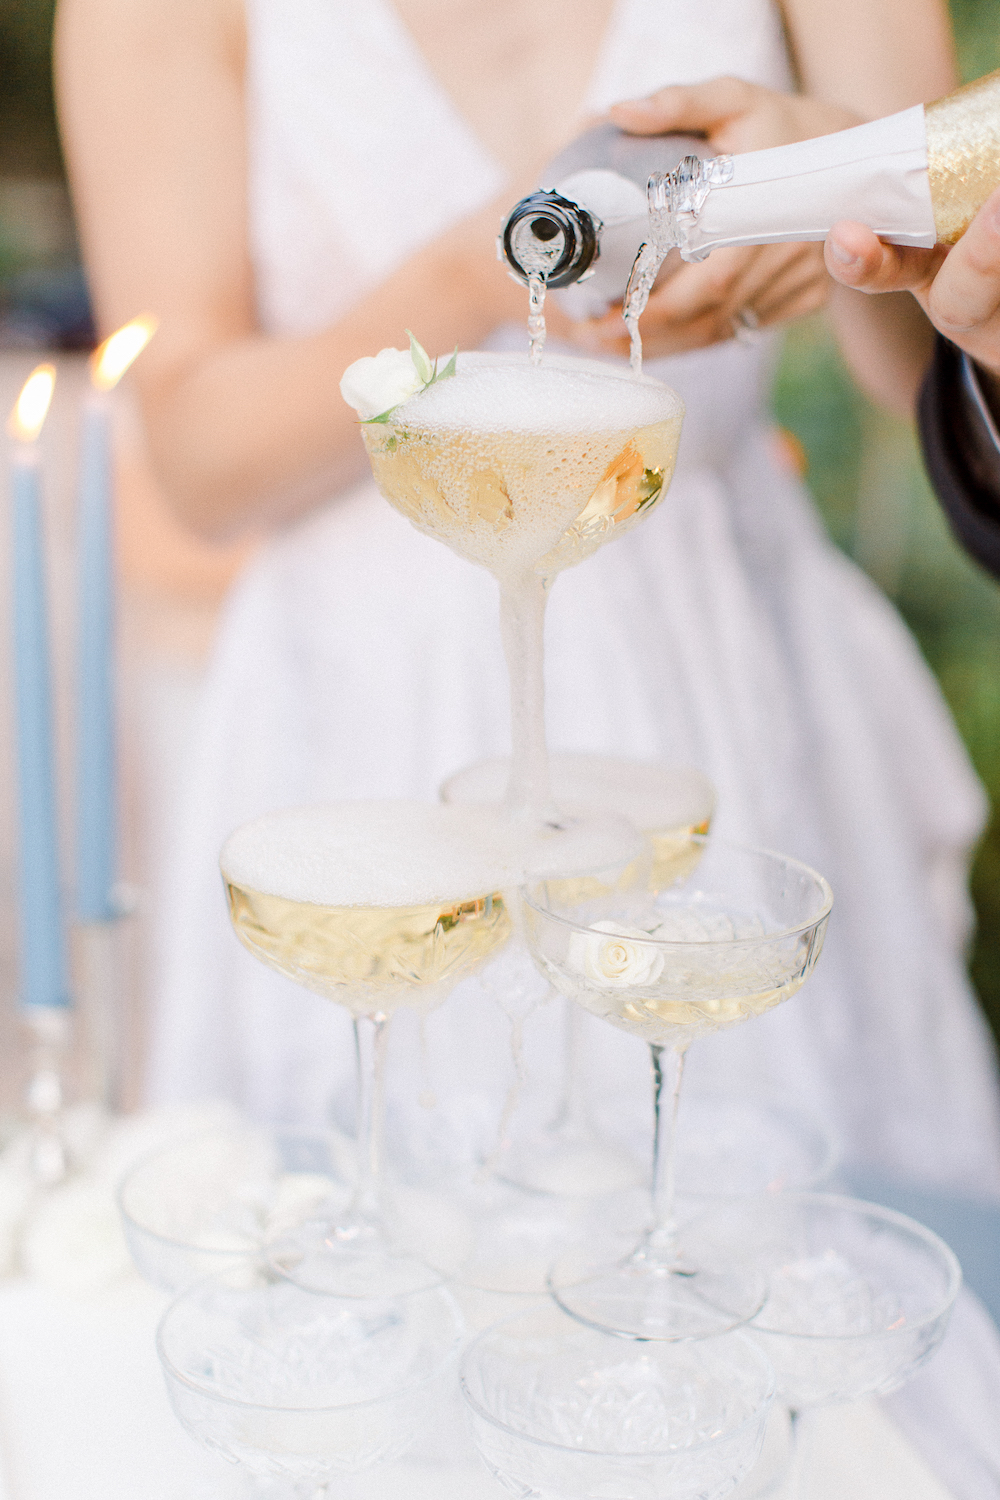 Rancho Las Lomas Micro-Wedding with Lucky Day Events Co. / Micro-Wedding / Intimate Wedding / Dusty Blue Wedding / Champagne Tower